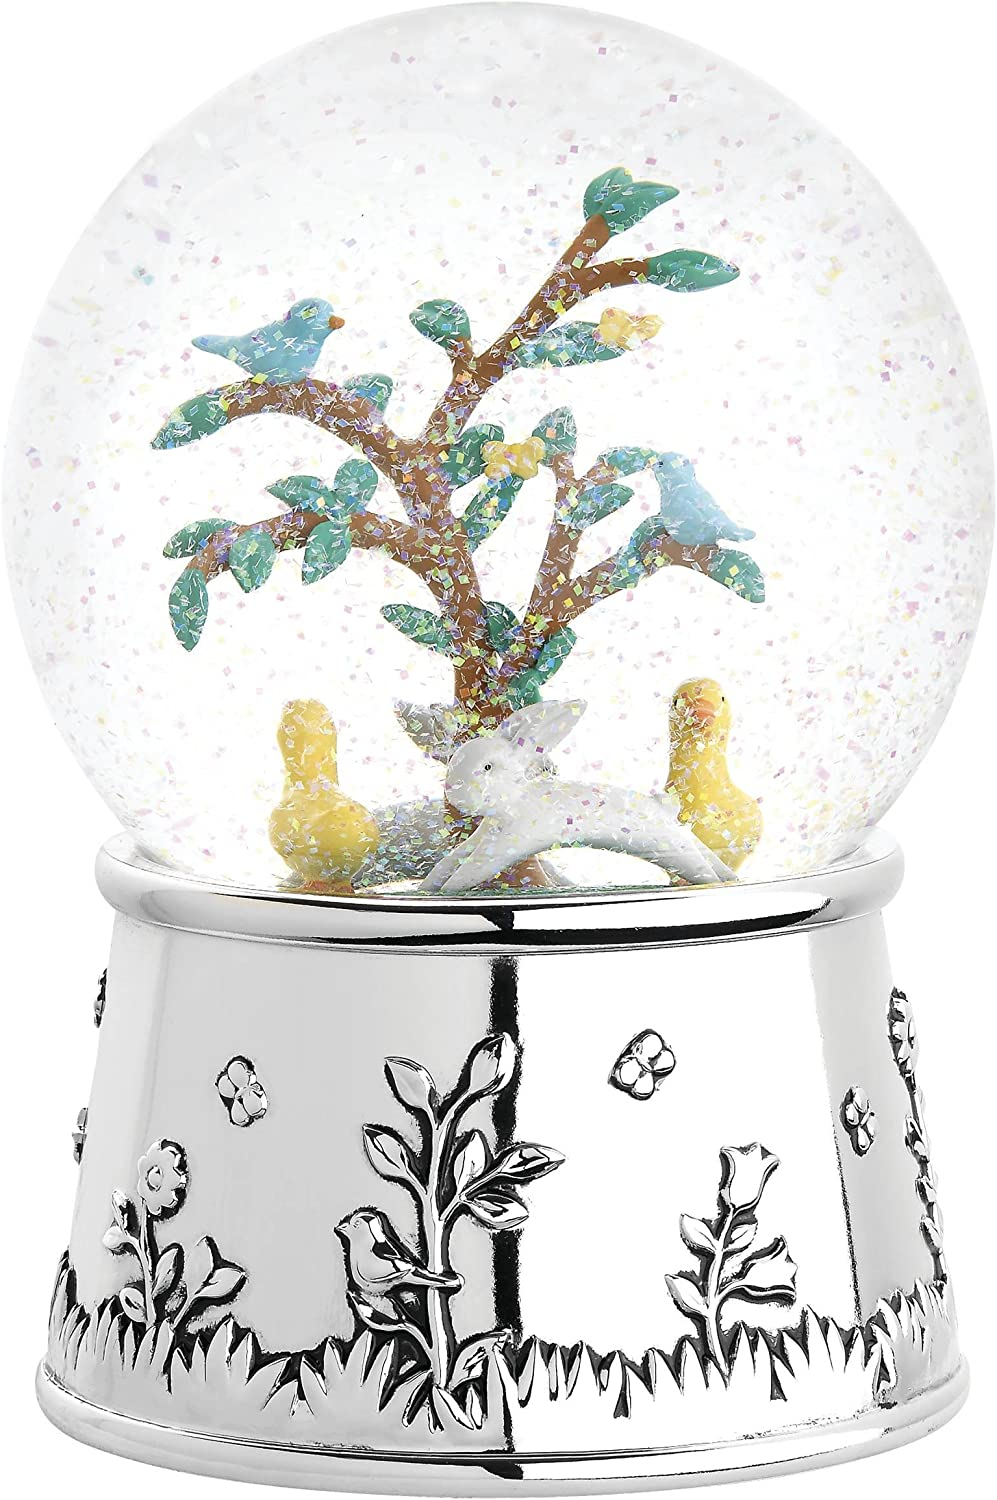 Reed & Barton Quilted Rabbit Musical Snowglobe